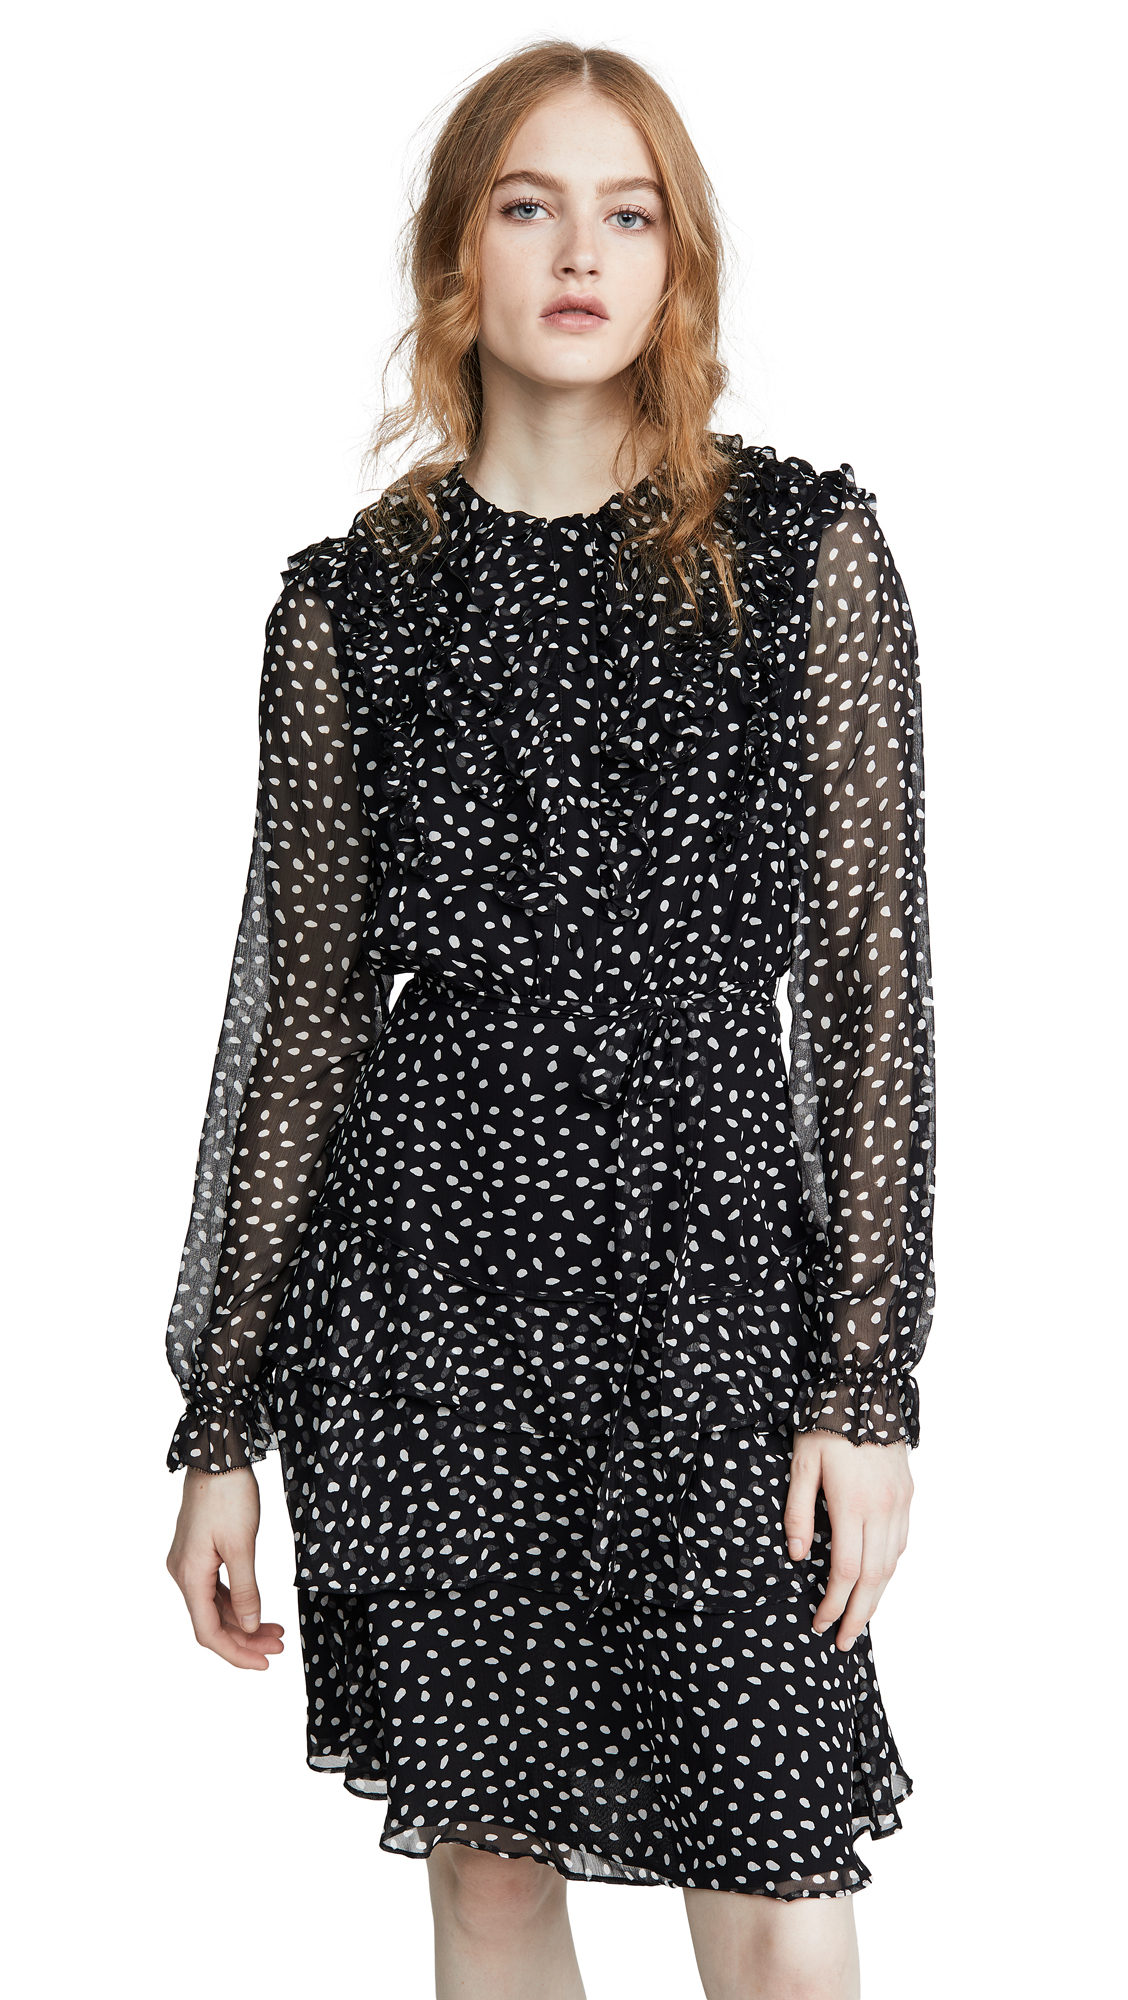 Jason Wu Small Dot Long Sleeve Dress - 50% Off Sale